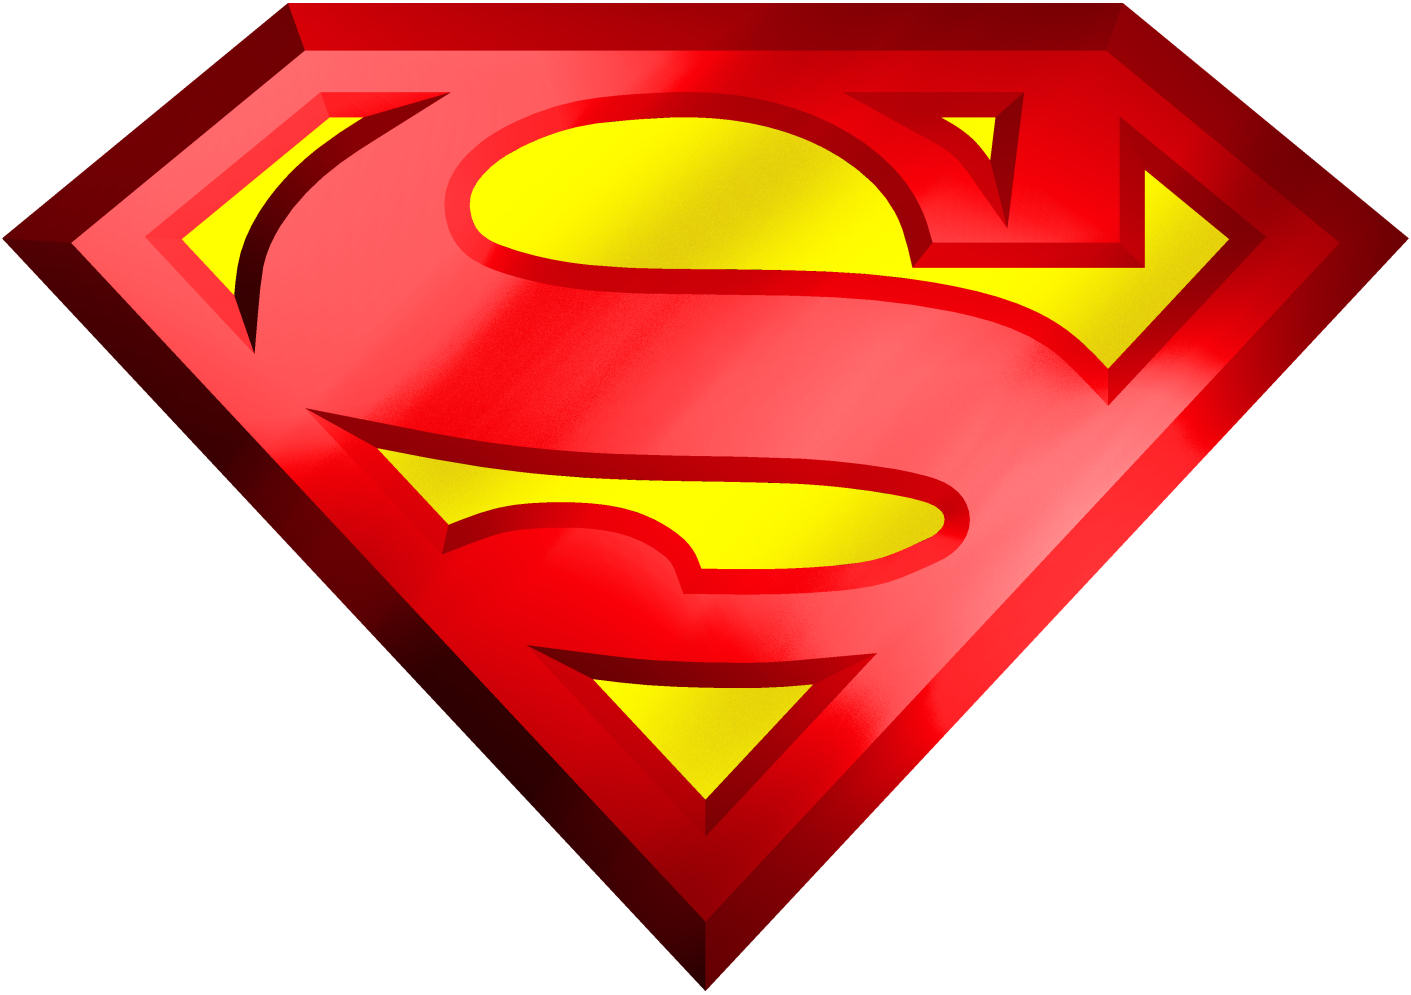 Free Download Of Superman Icon Clipart image #19787